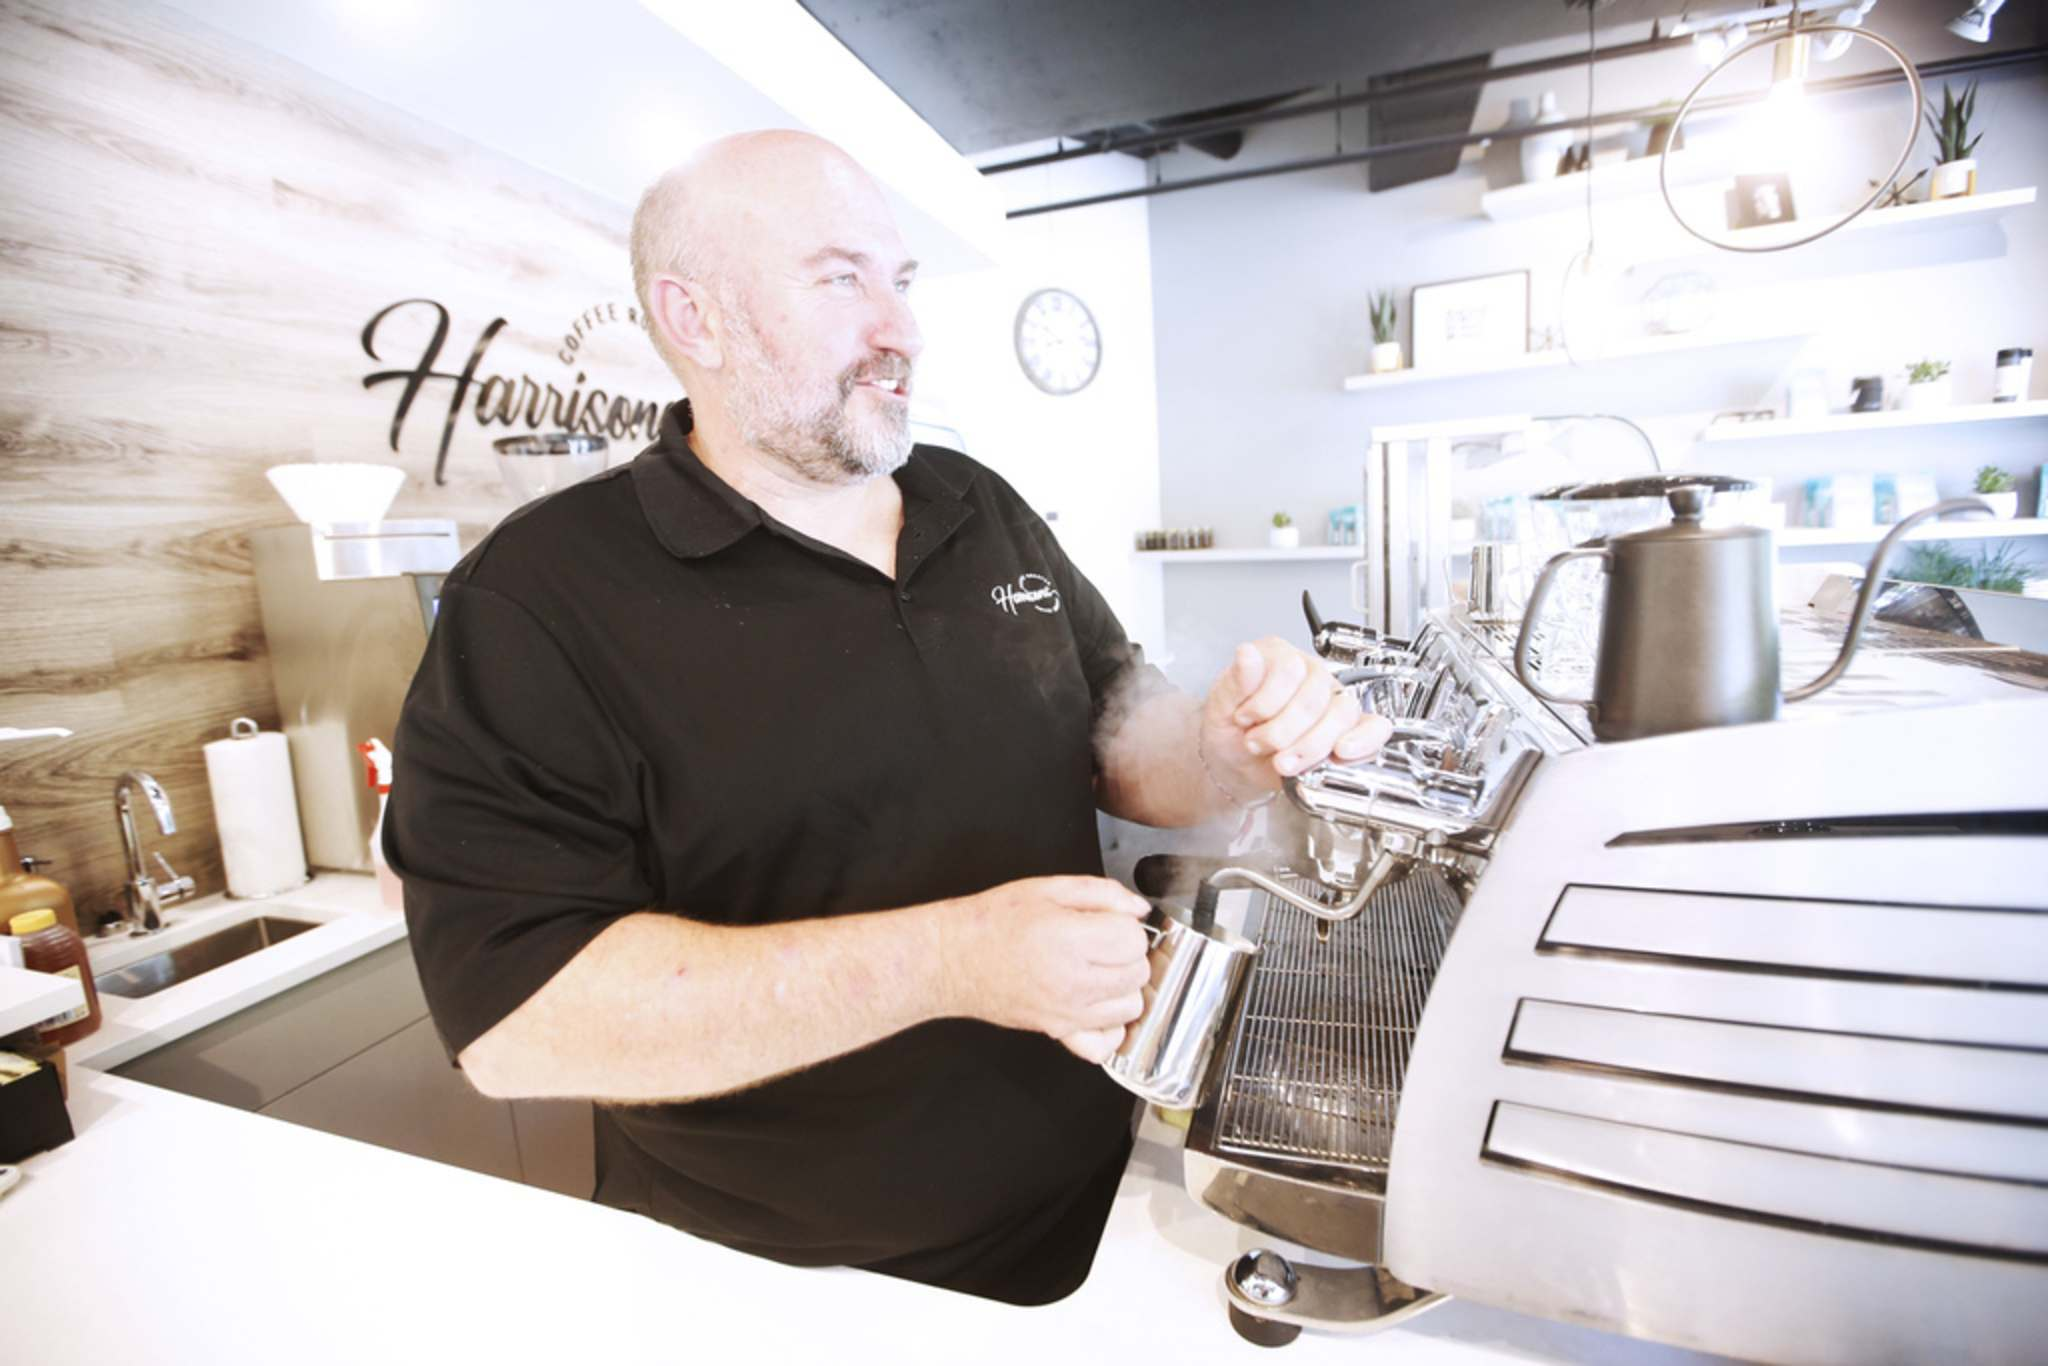 JOHN WOODS / WINNIPEG FREE PRESS</p><p>Al Dawson, owner of Harrisons Coffee Co., makes a latte at his new coffee shop and roaster on Waterfront Drive in Winnipeg.</p>